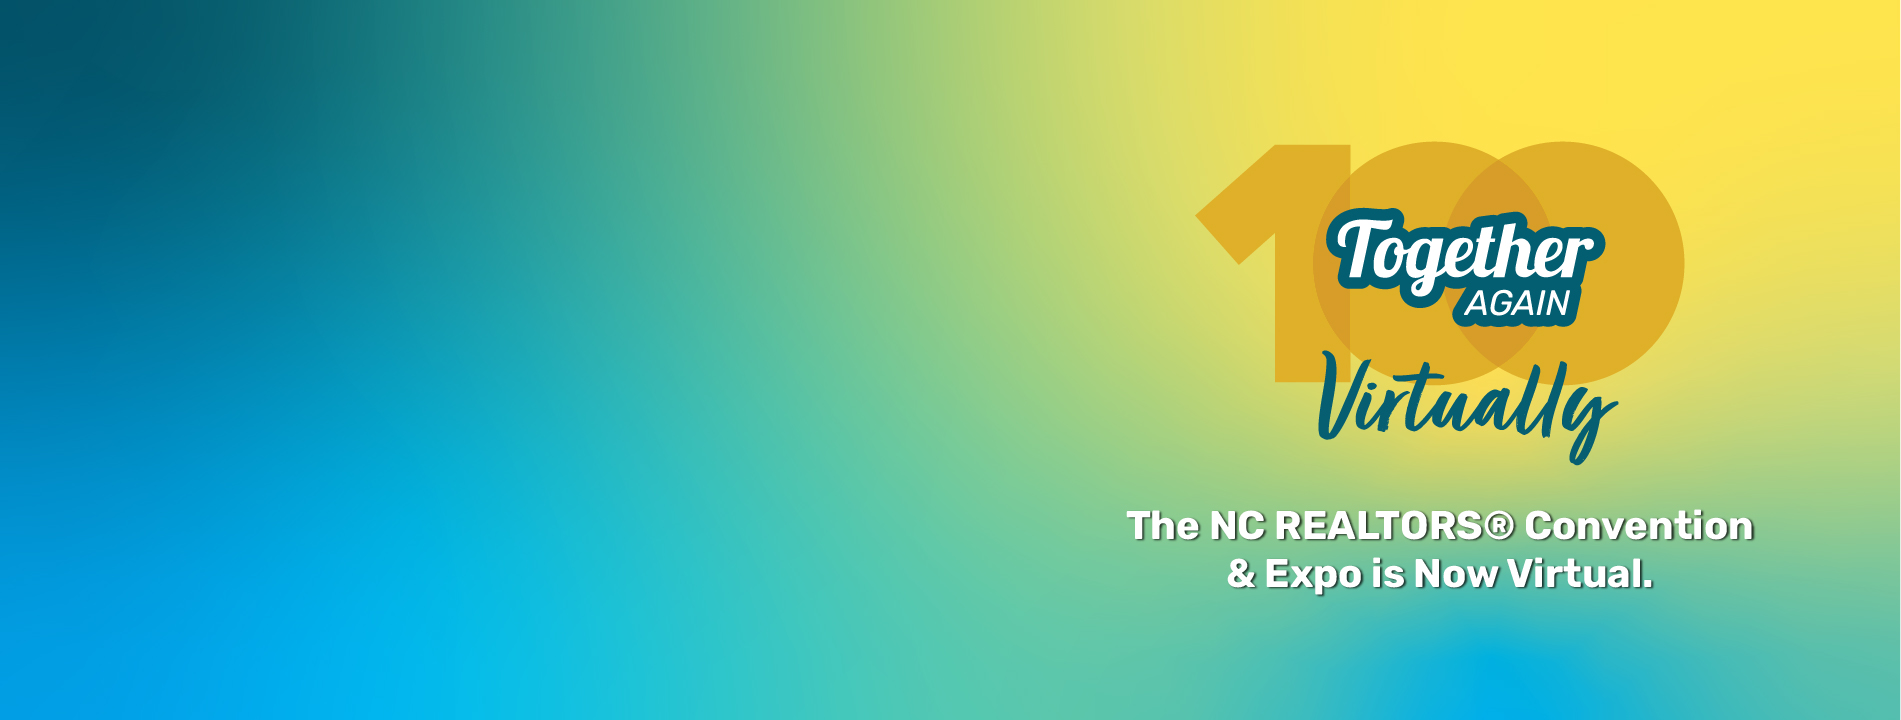 The NC REALTORS® Convention & Expo is Now Virtual.